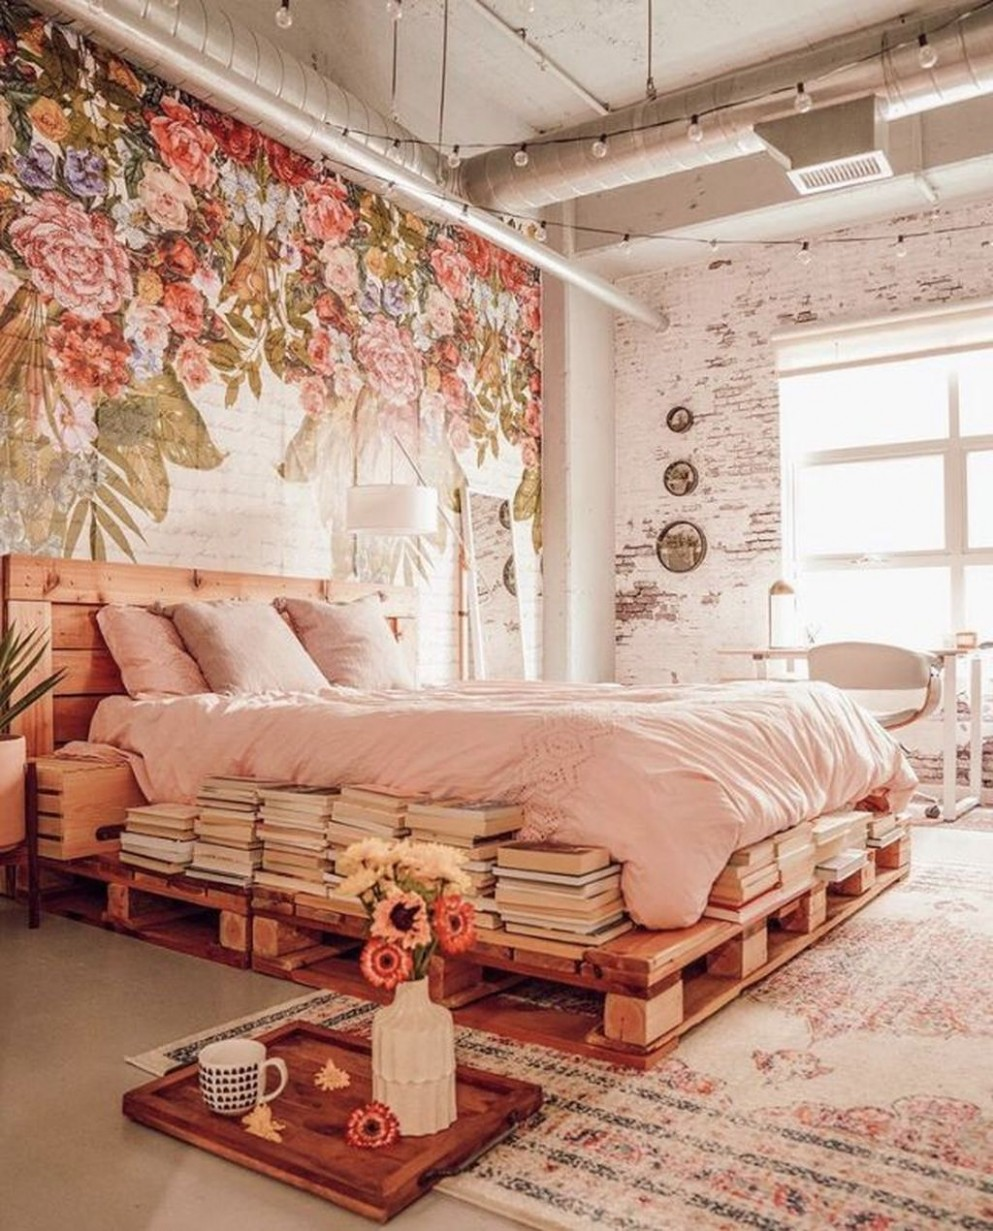 12 Romantic Bedroom Decor Ideas With Floral Theme - Trendehouse - Bedroom Ideas Themes